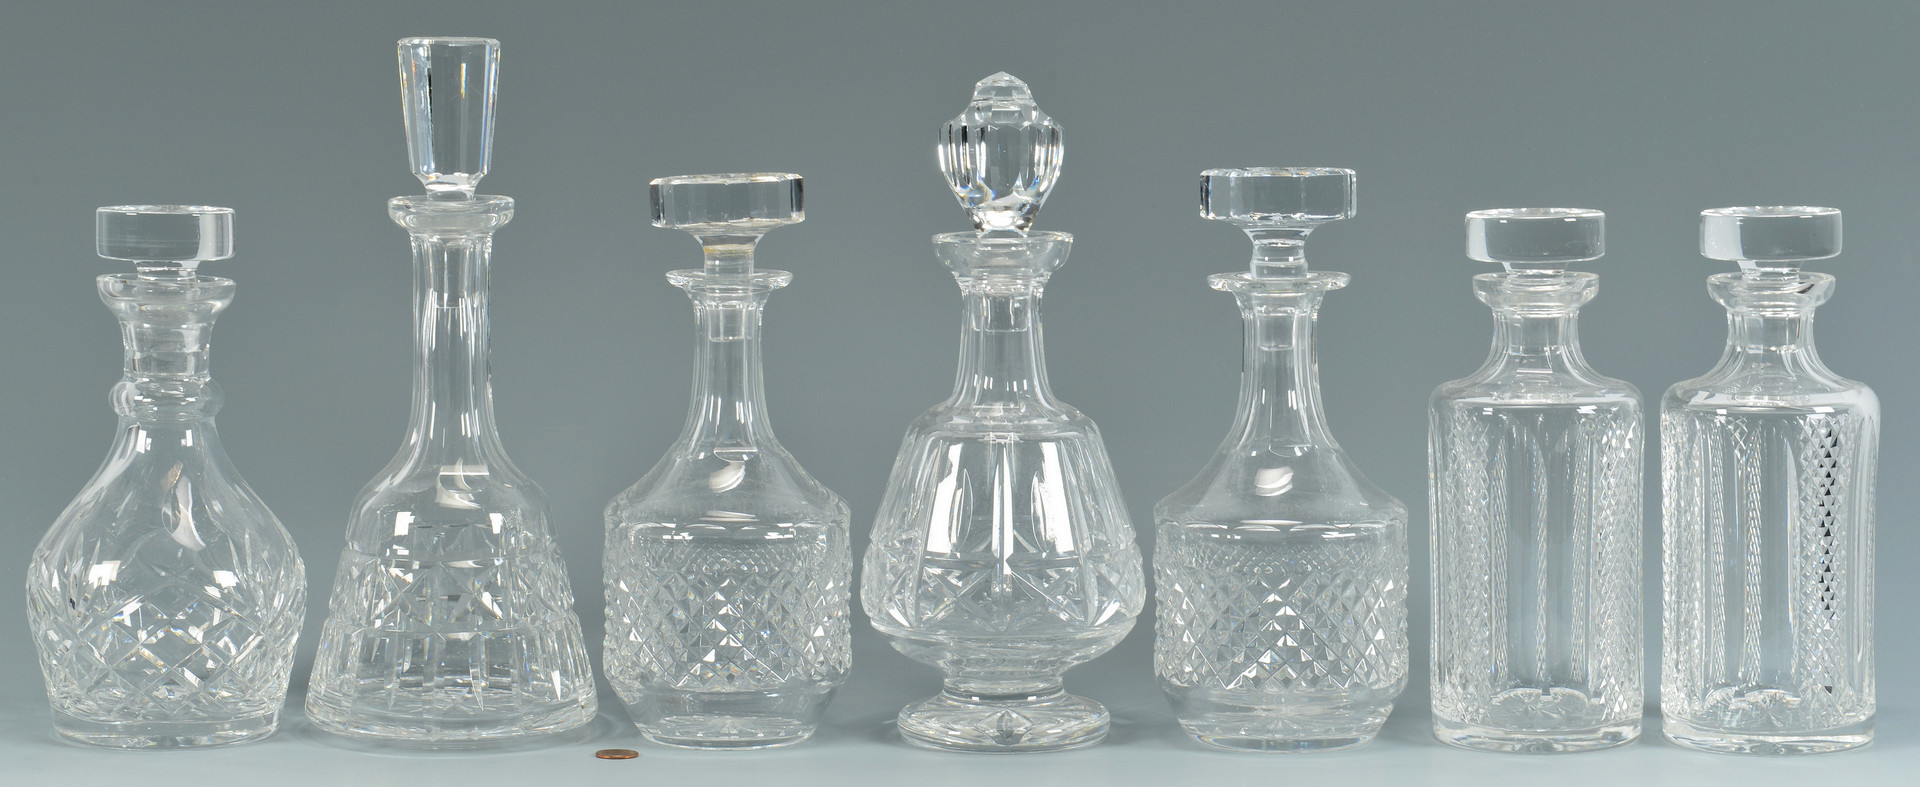 Captivating waterford crystal decanter waterford crystal lismore for dining display serveware ideas